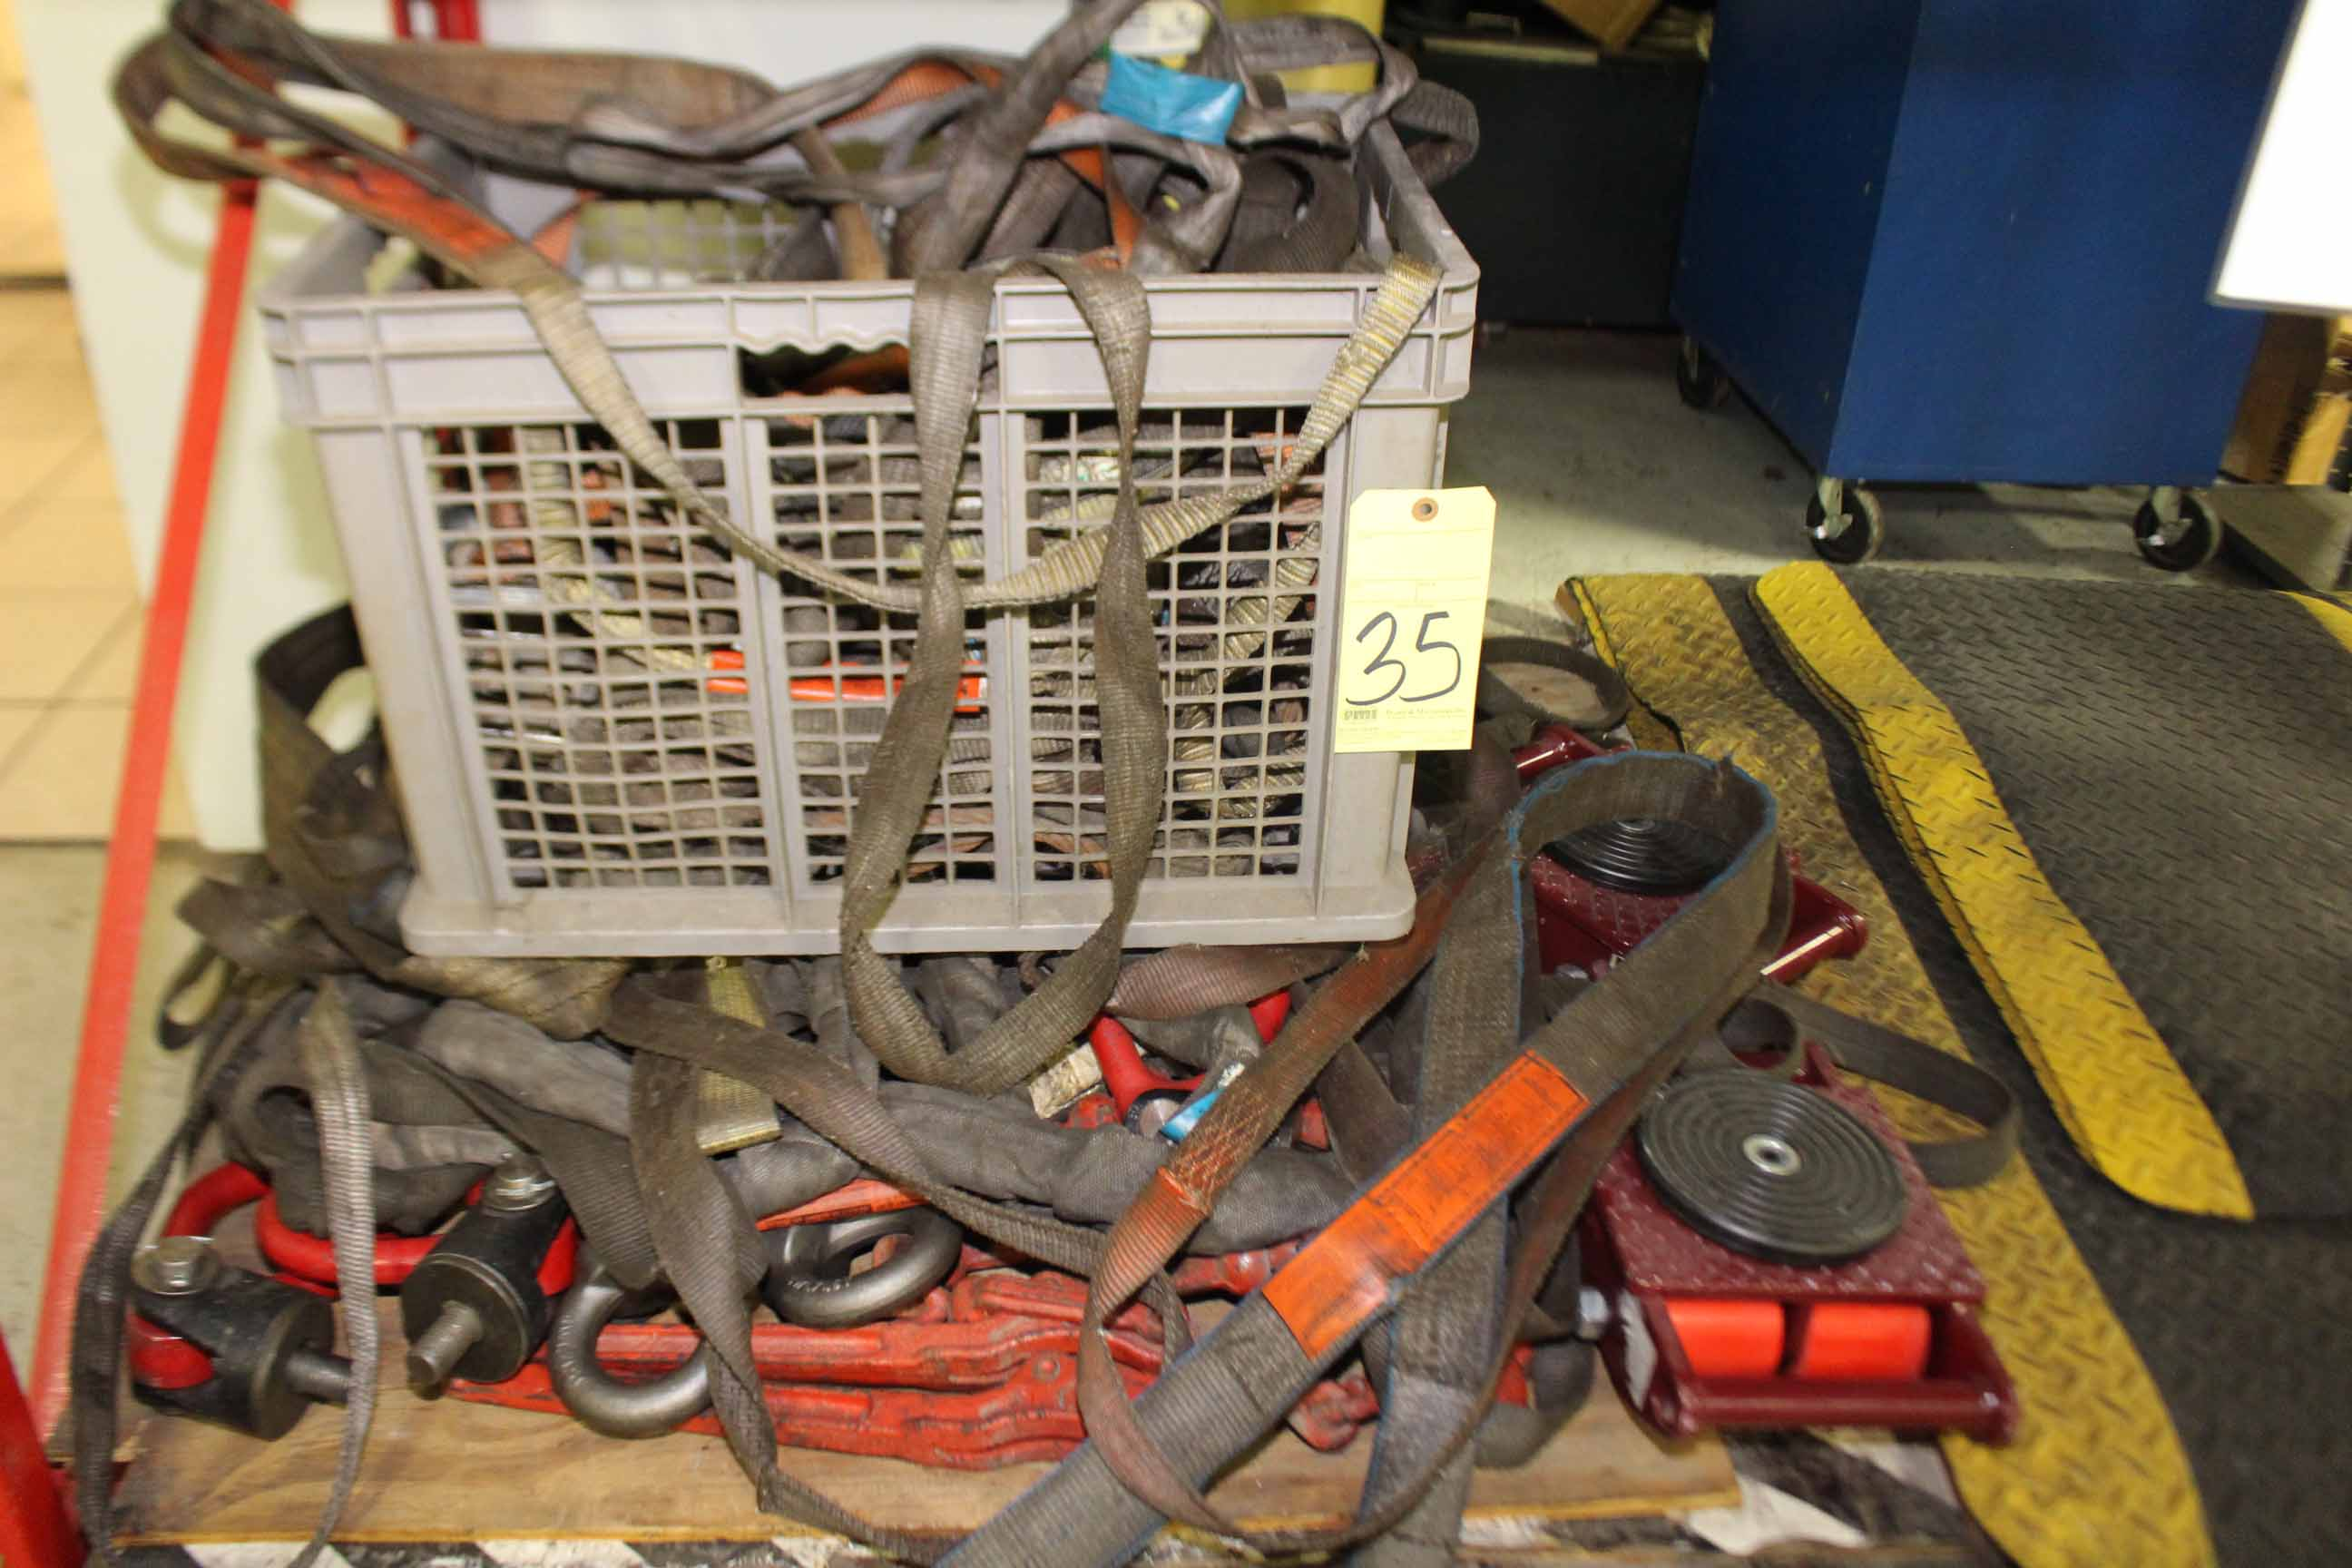 Lot 35 - LOT CONSISTING OF: rigging straps, machine skates chain binders